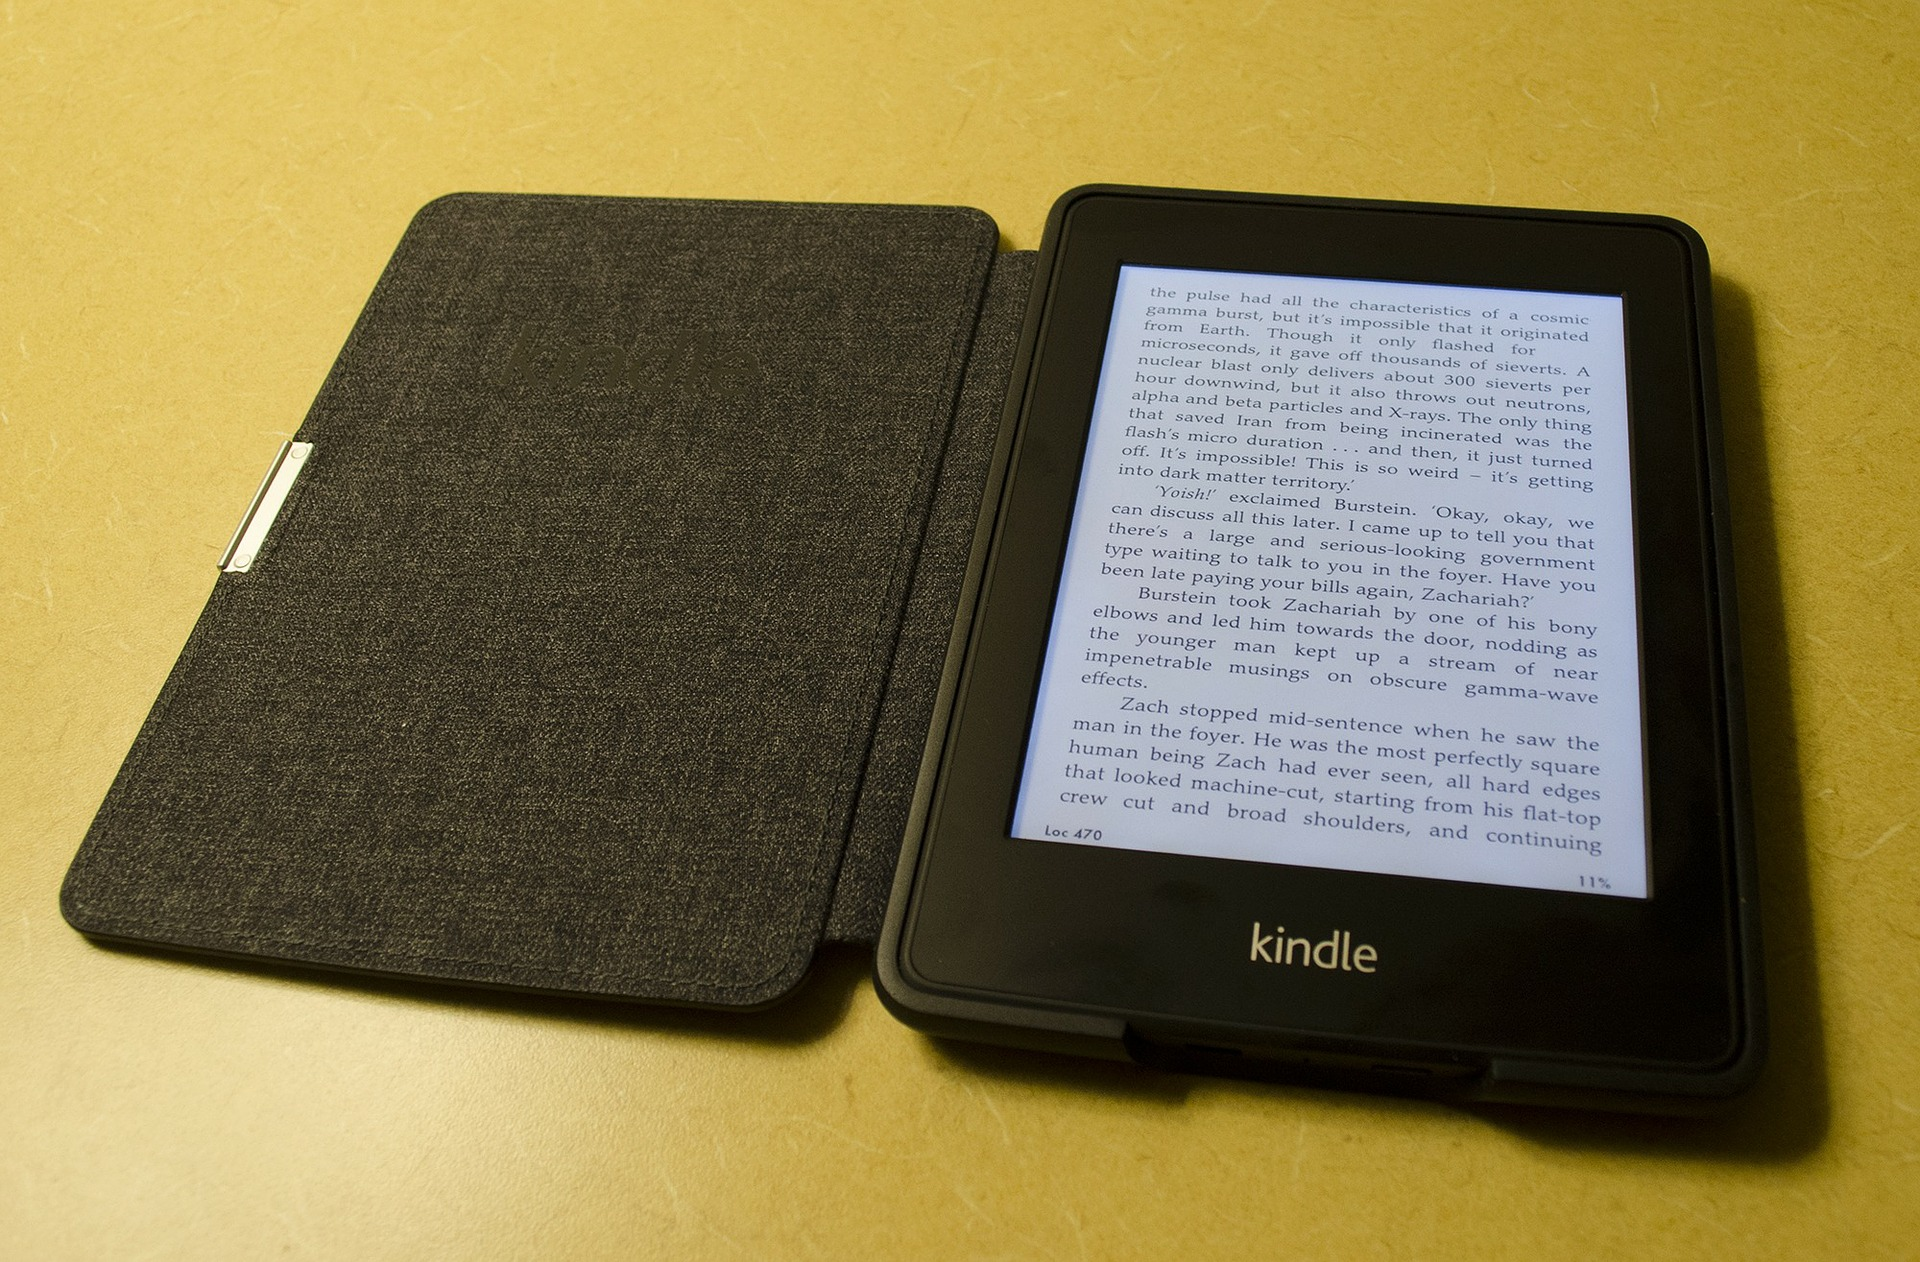 Kindle e-reader open with a book